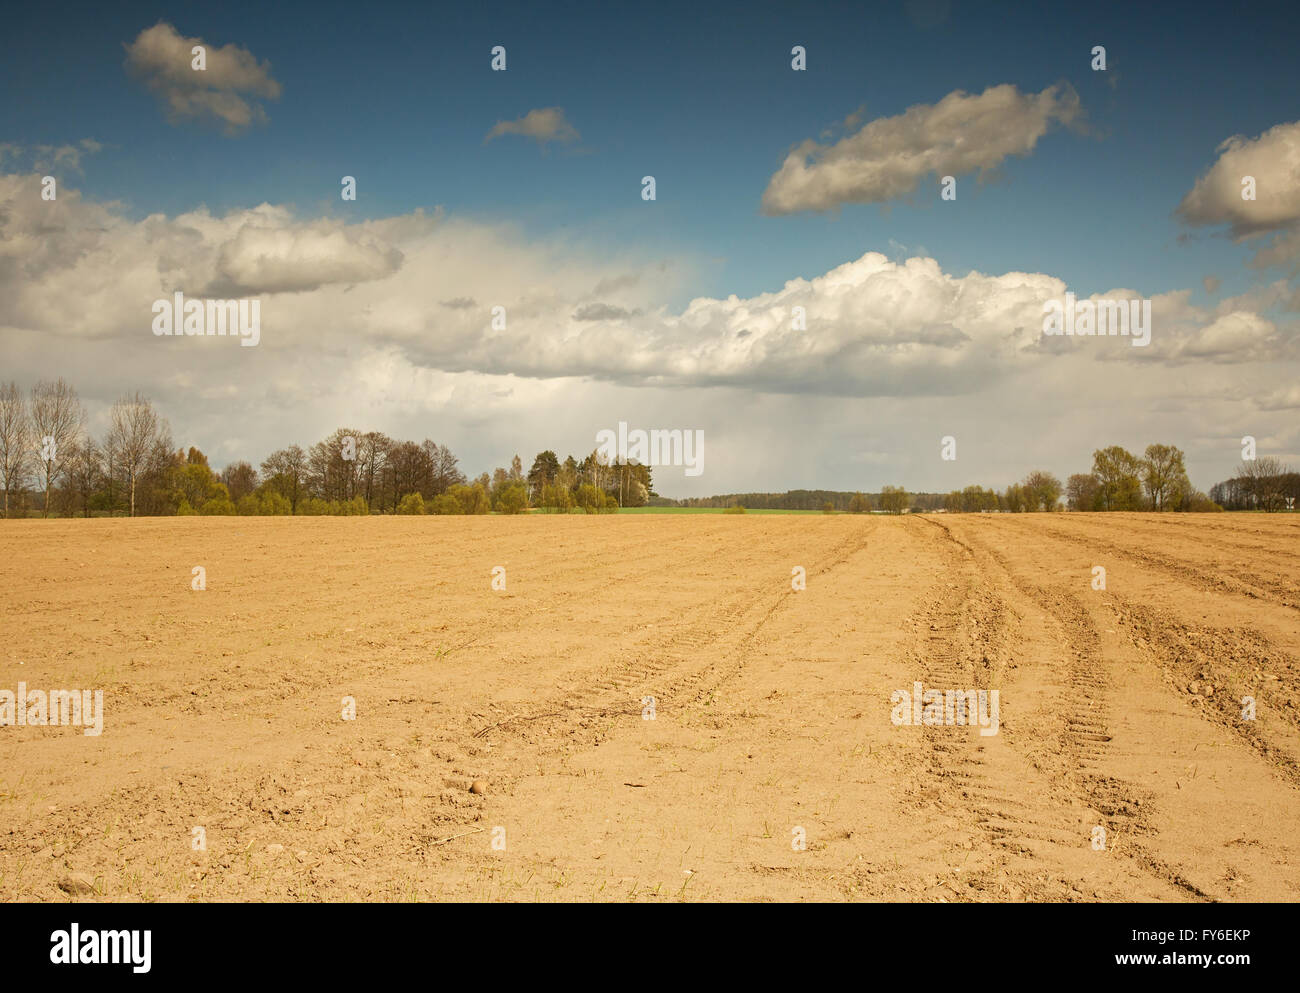 Poland,Podlaskie region in april. Rural landscape with the field ready to plow and beautiful blue sky with white - Stock Image